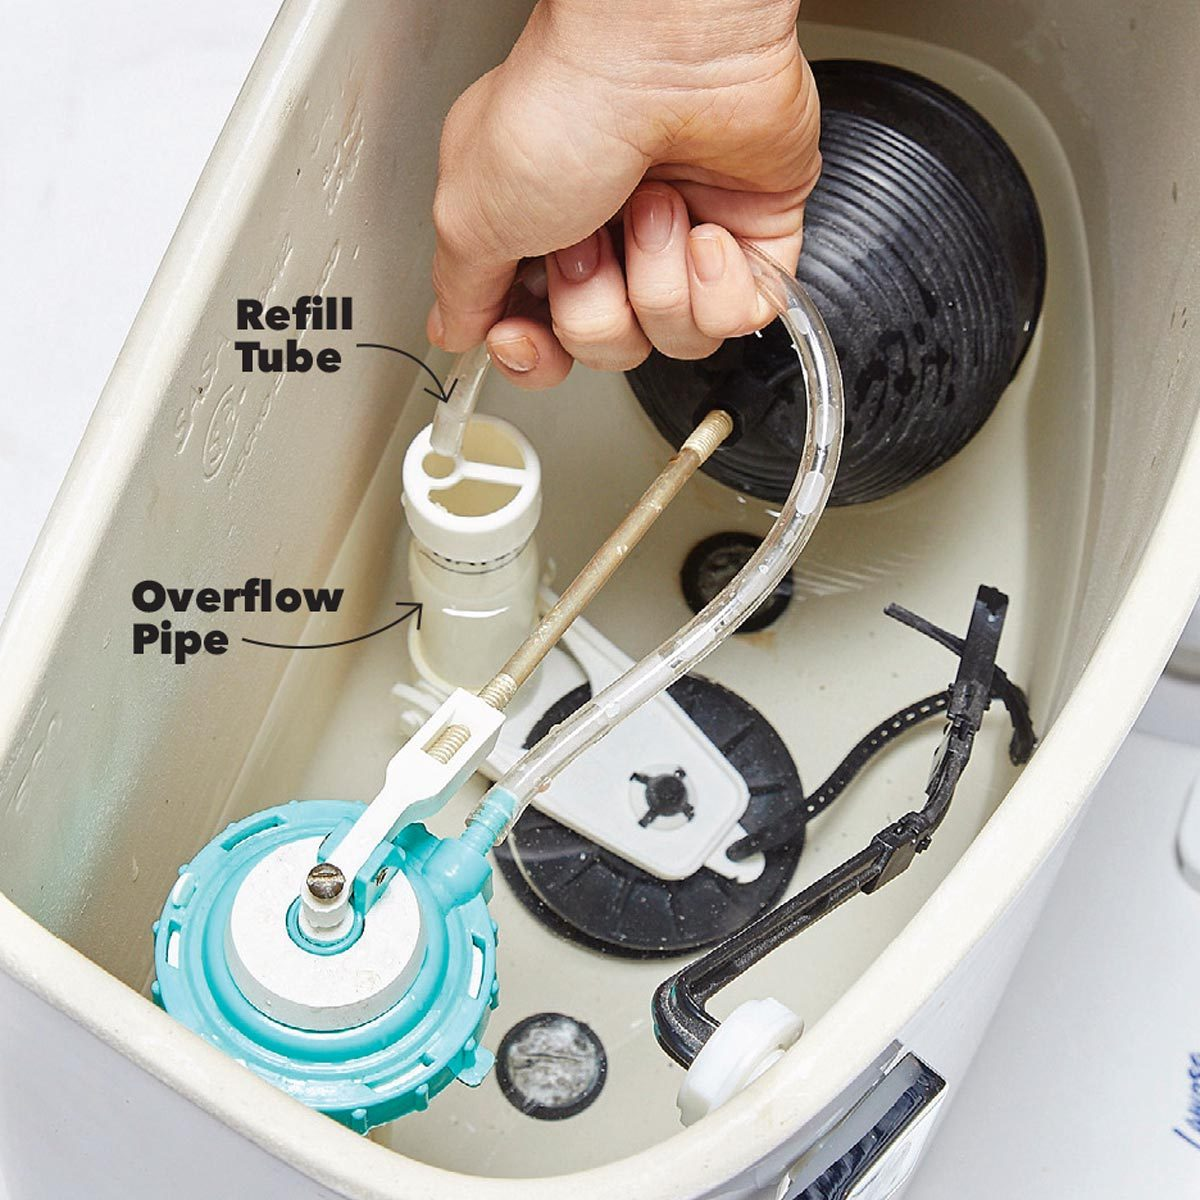 refill tube toilet